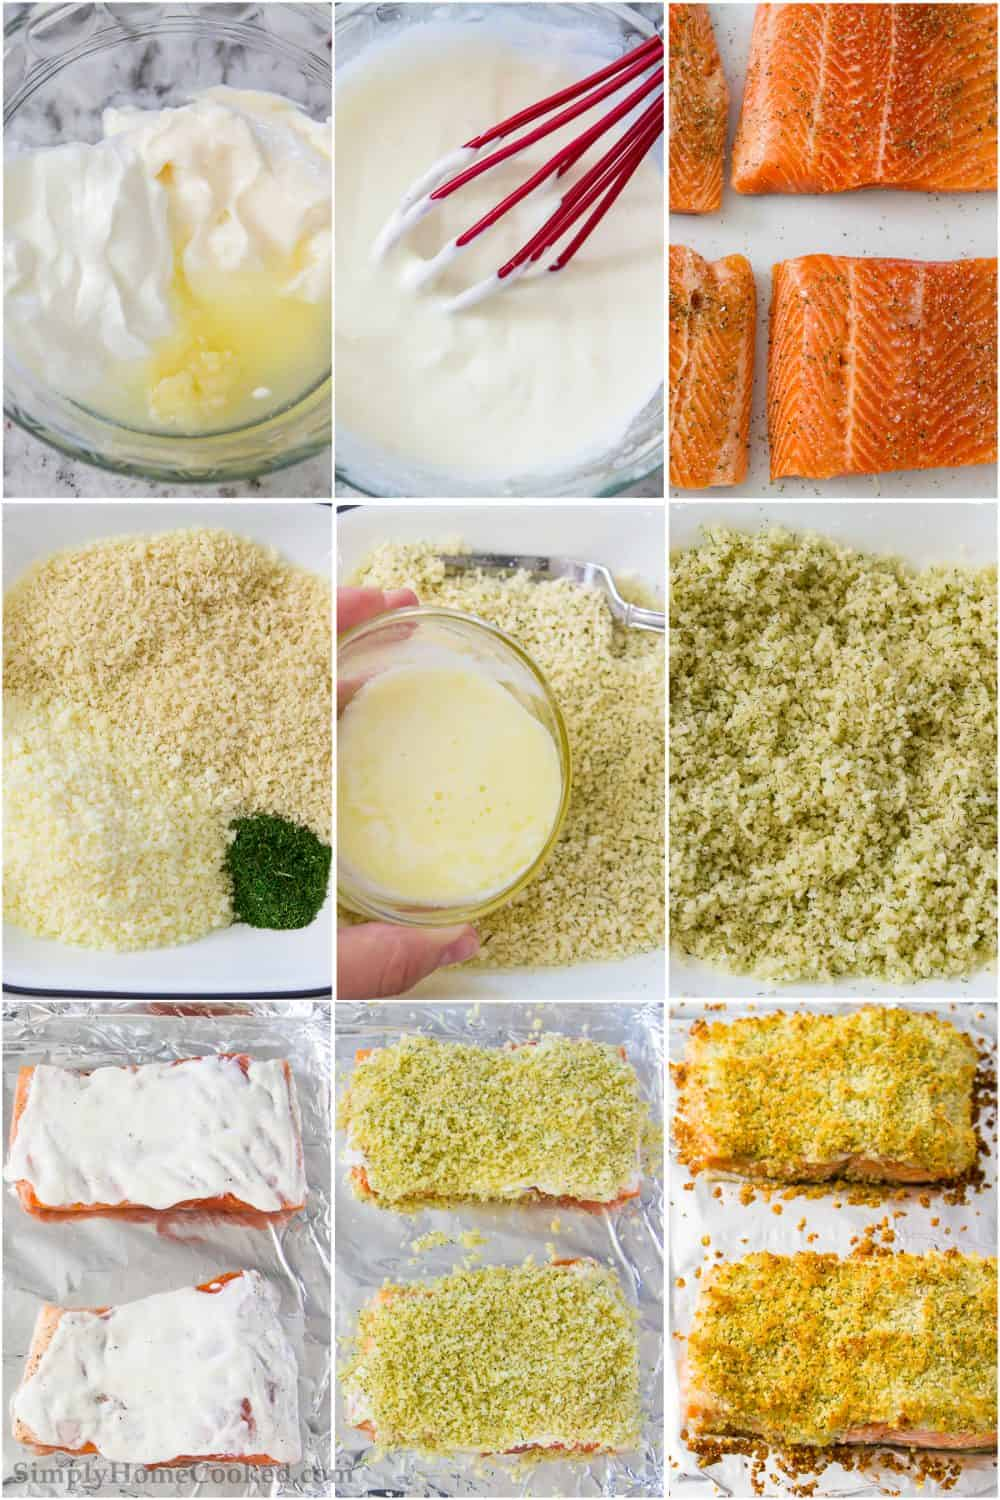 steps to make panko crusted salmon. Breaded salmon fillets on a baking sheet